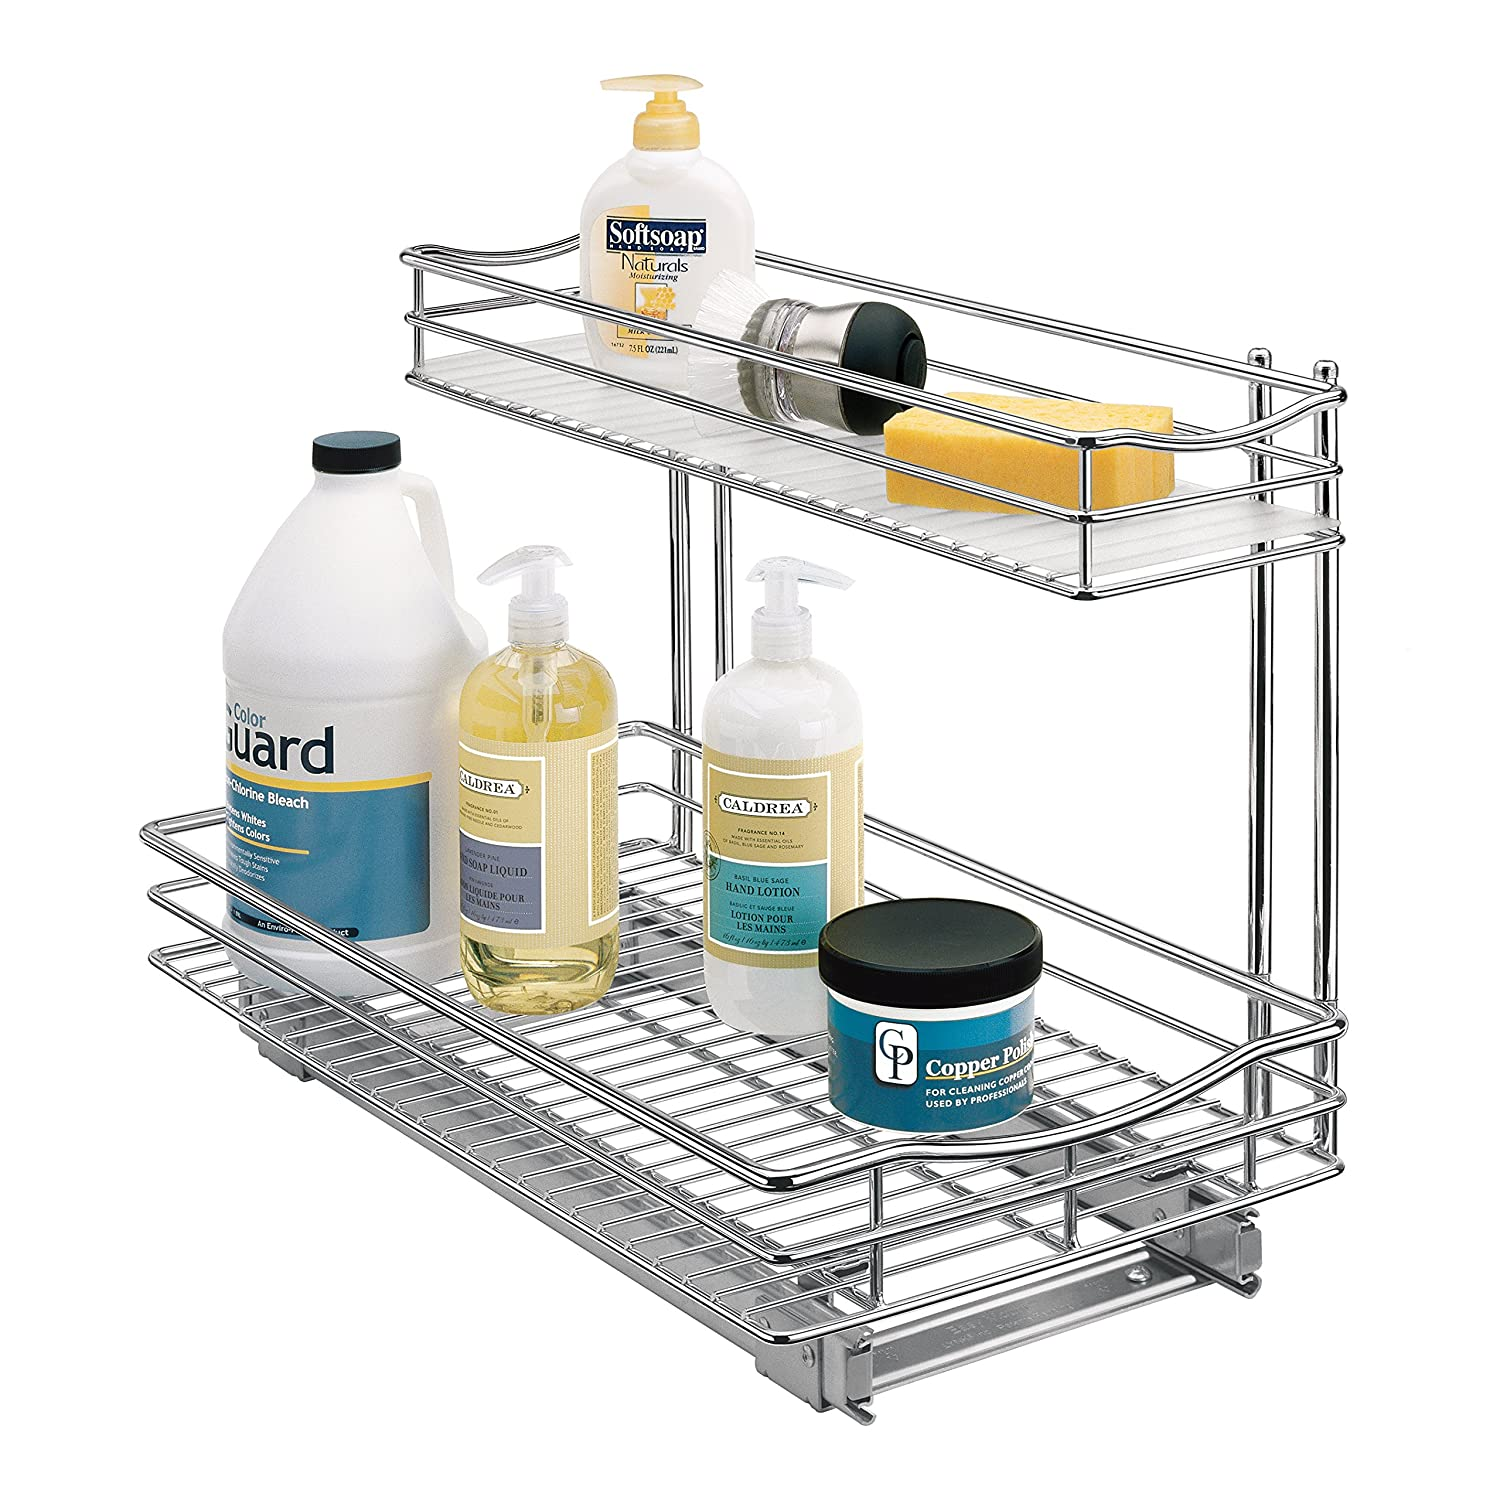 Lynk Professional Sink Cabinet Organizer with Pull Out Two Tier Sliding Shelf, 11.5w x 18d x 14h-Inch, Chrome